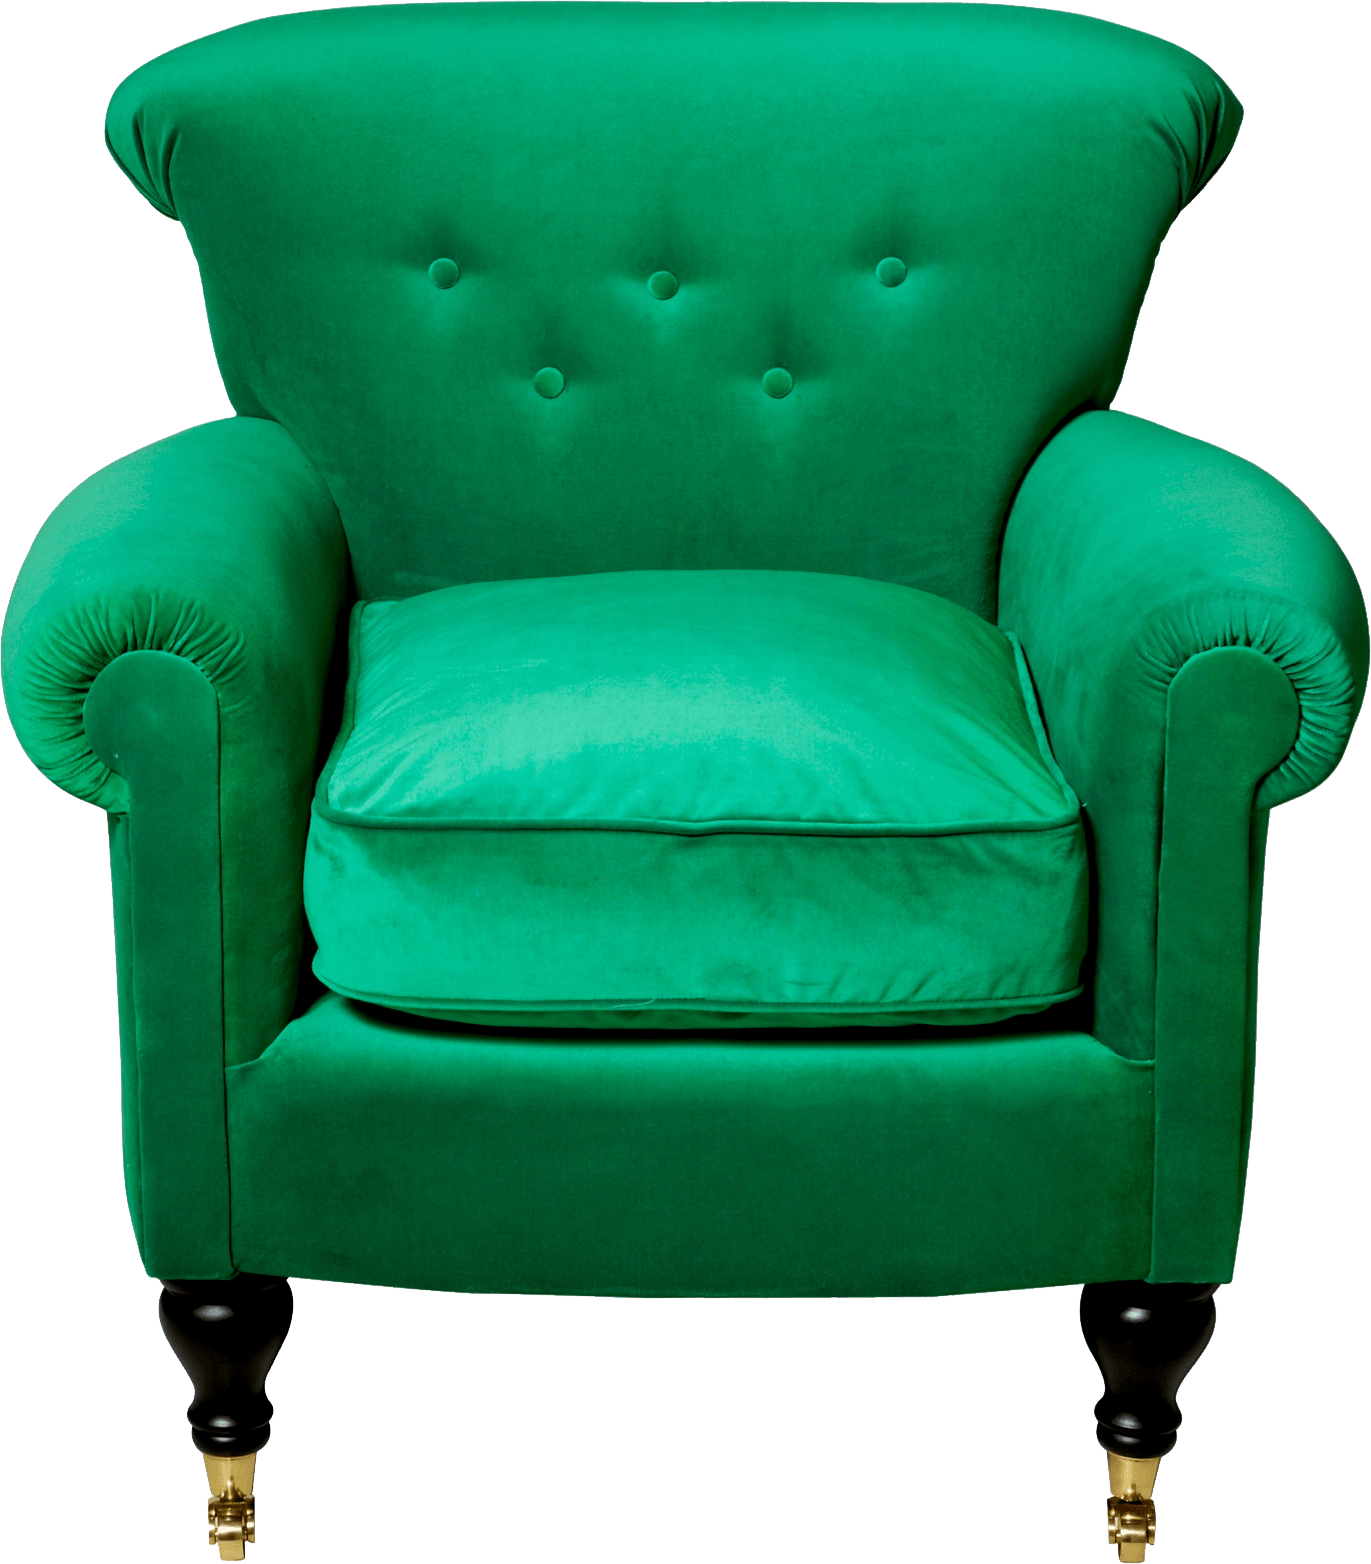 Comfy green armchair transparent. Furniture clipart arm chair